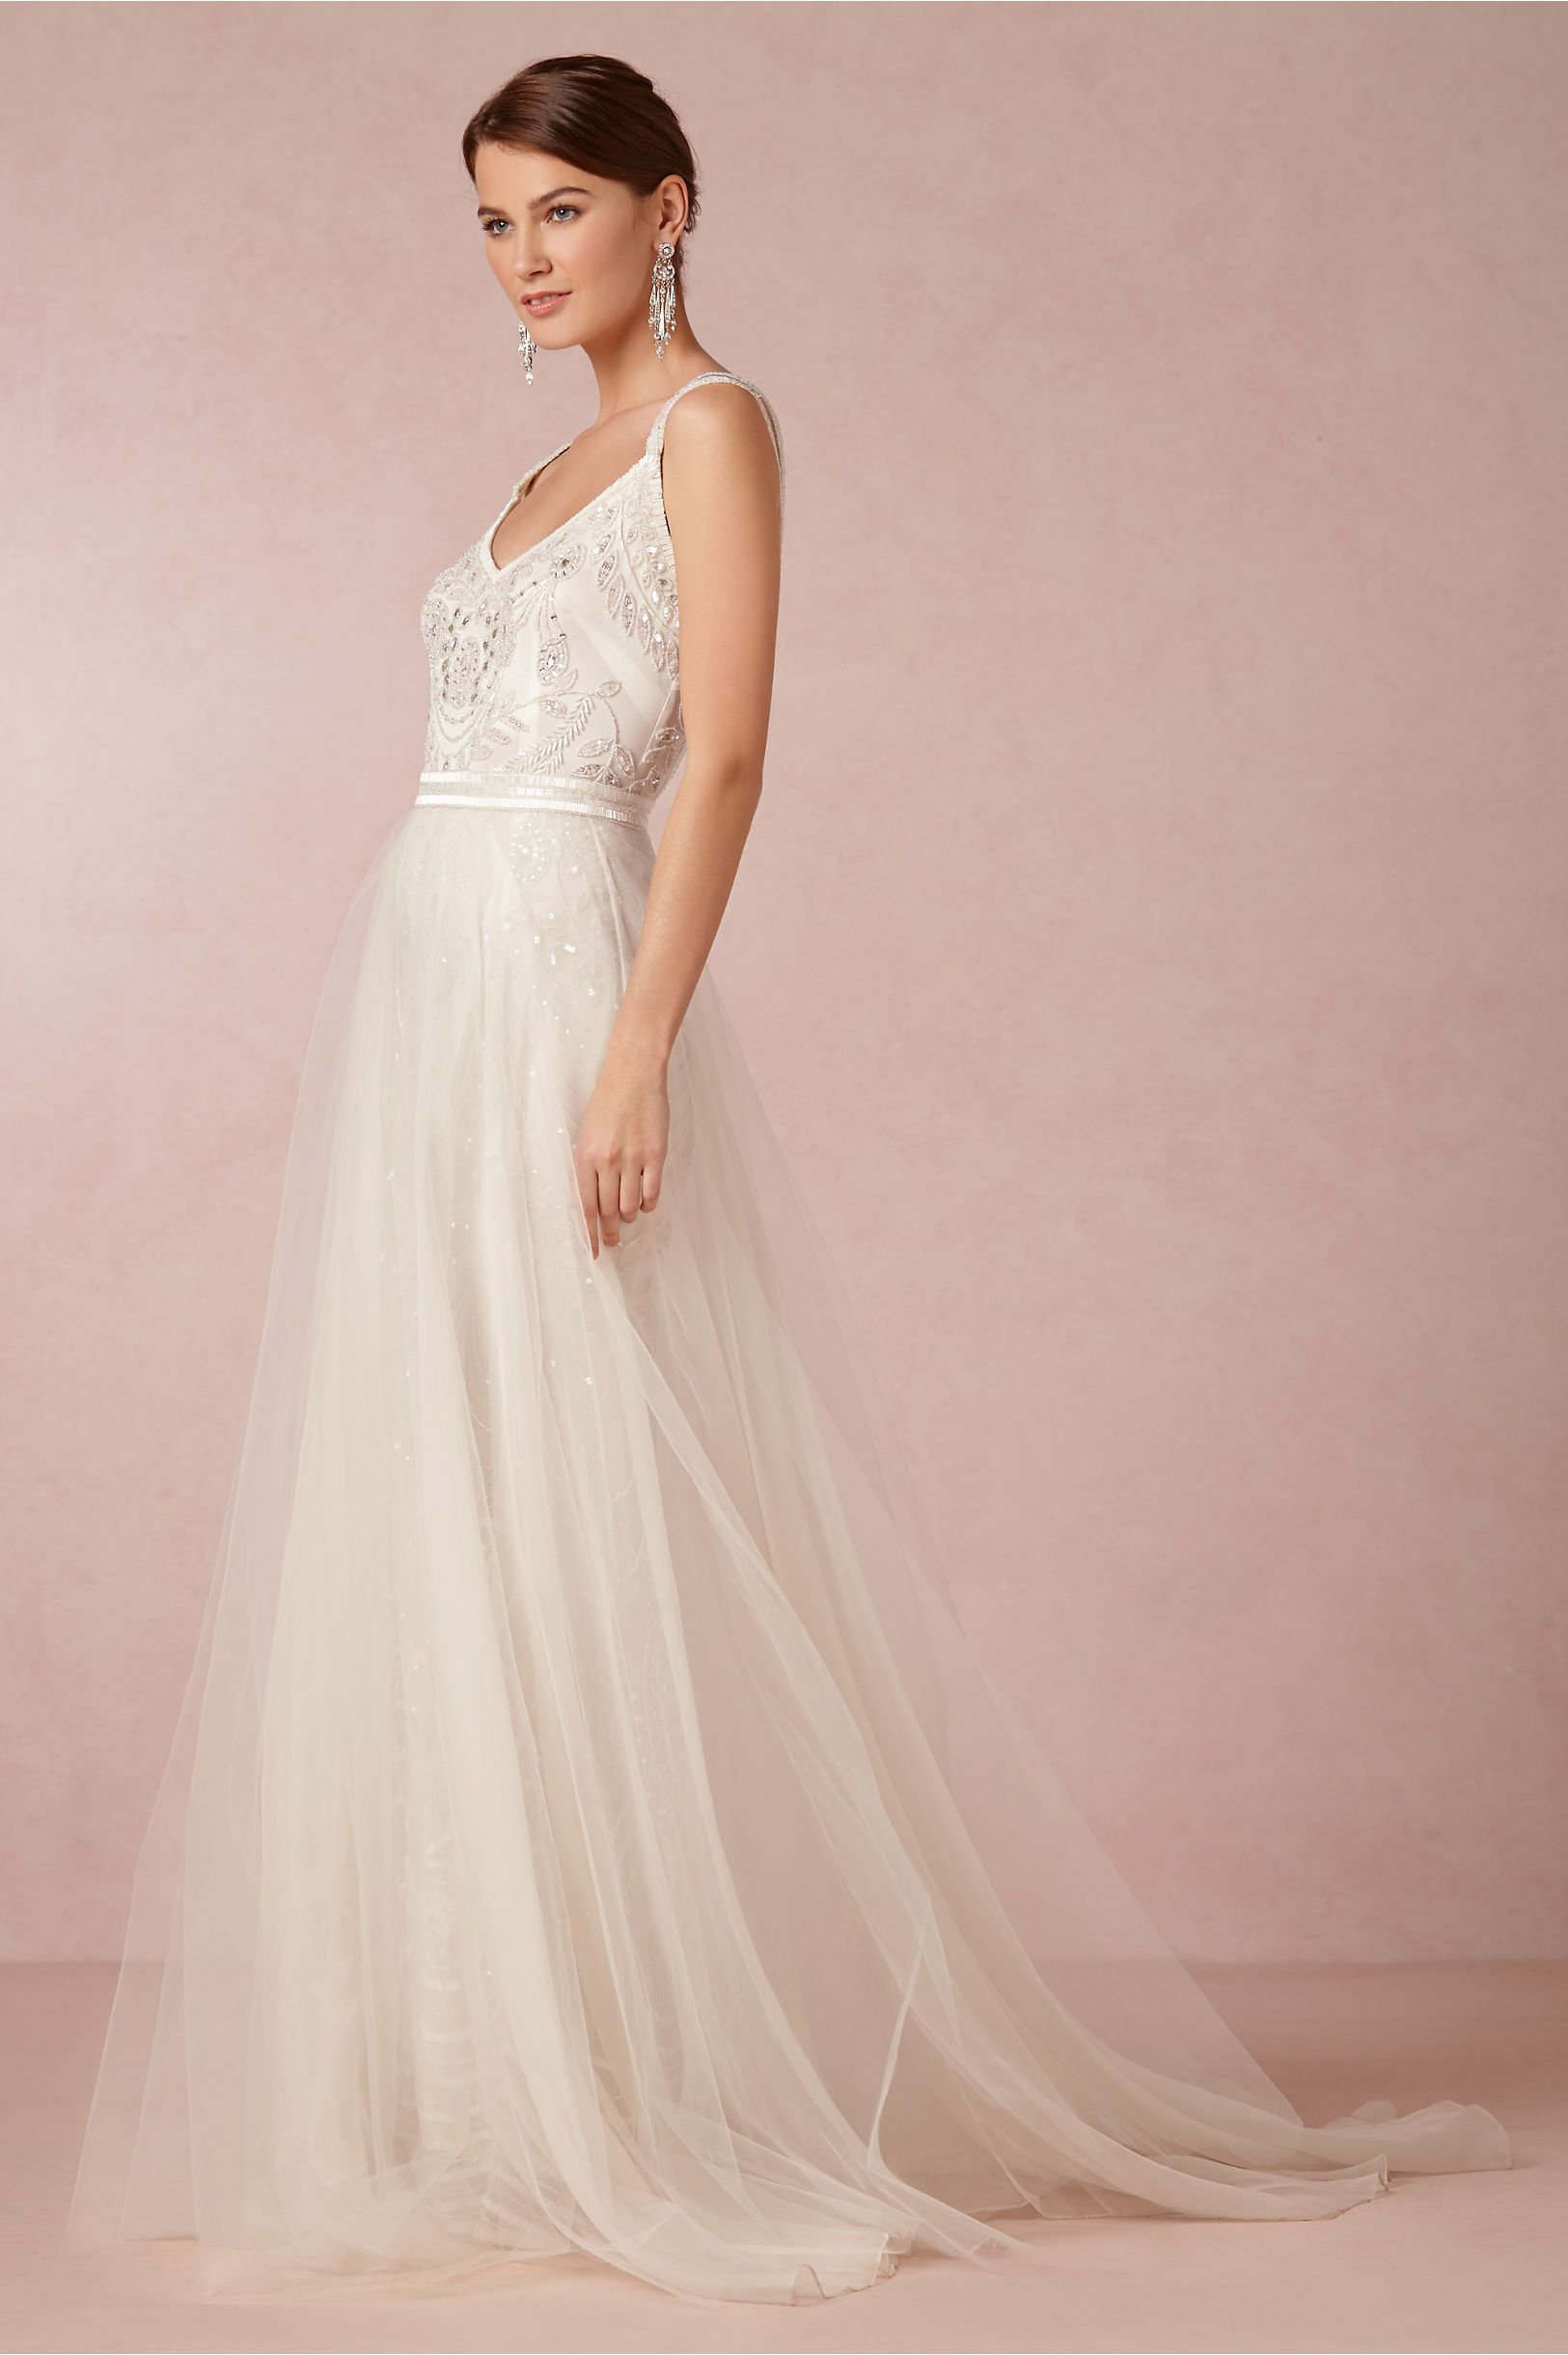 9943da88e41 ... Wedding Dresses with Sequin Diamond Beading Style. BHLDN Elsa Tulle  Skirt